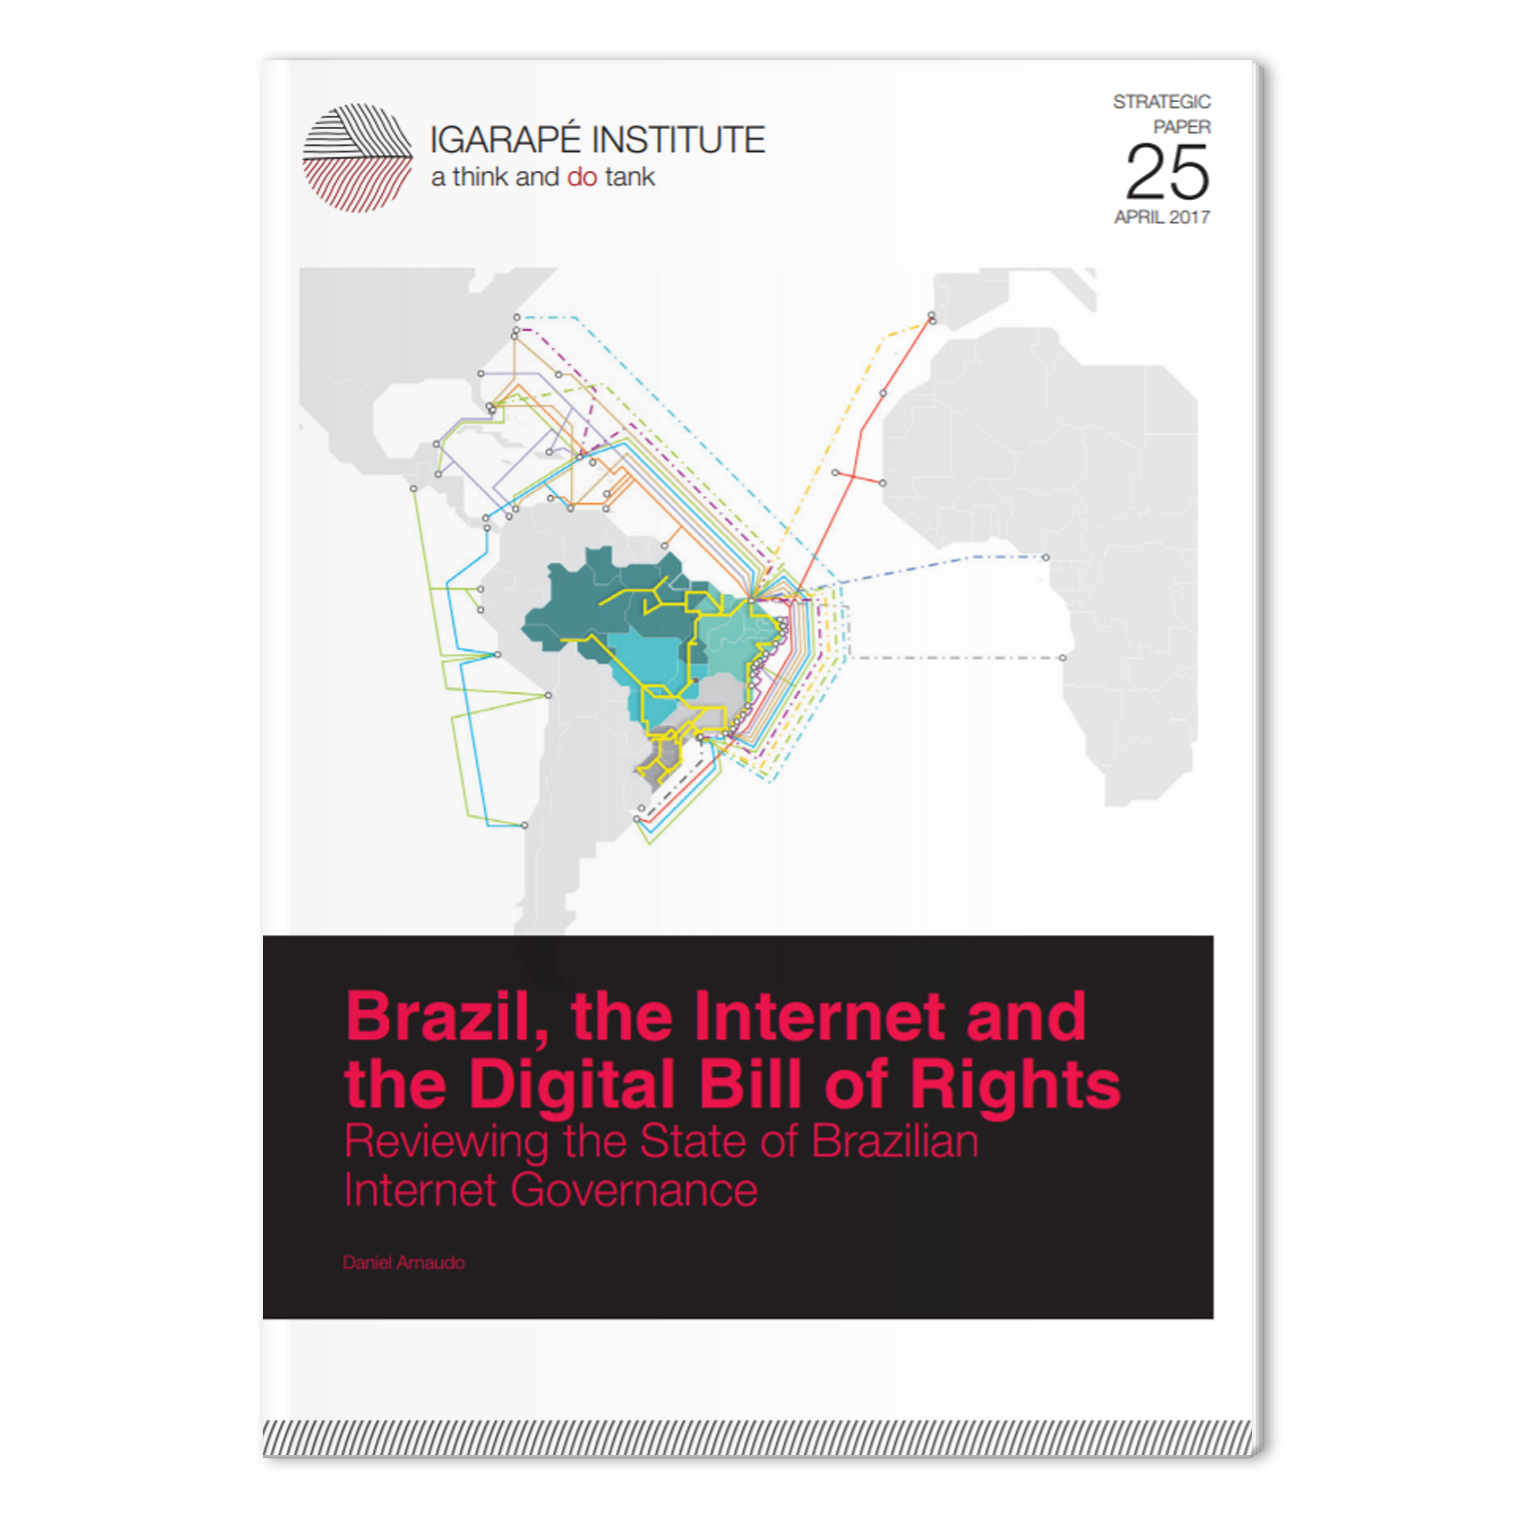 SP 25 Brazil the Internet and the Digital Bill of Rights Reviewing the State of Brazilian Internet Governance